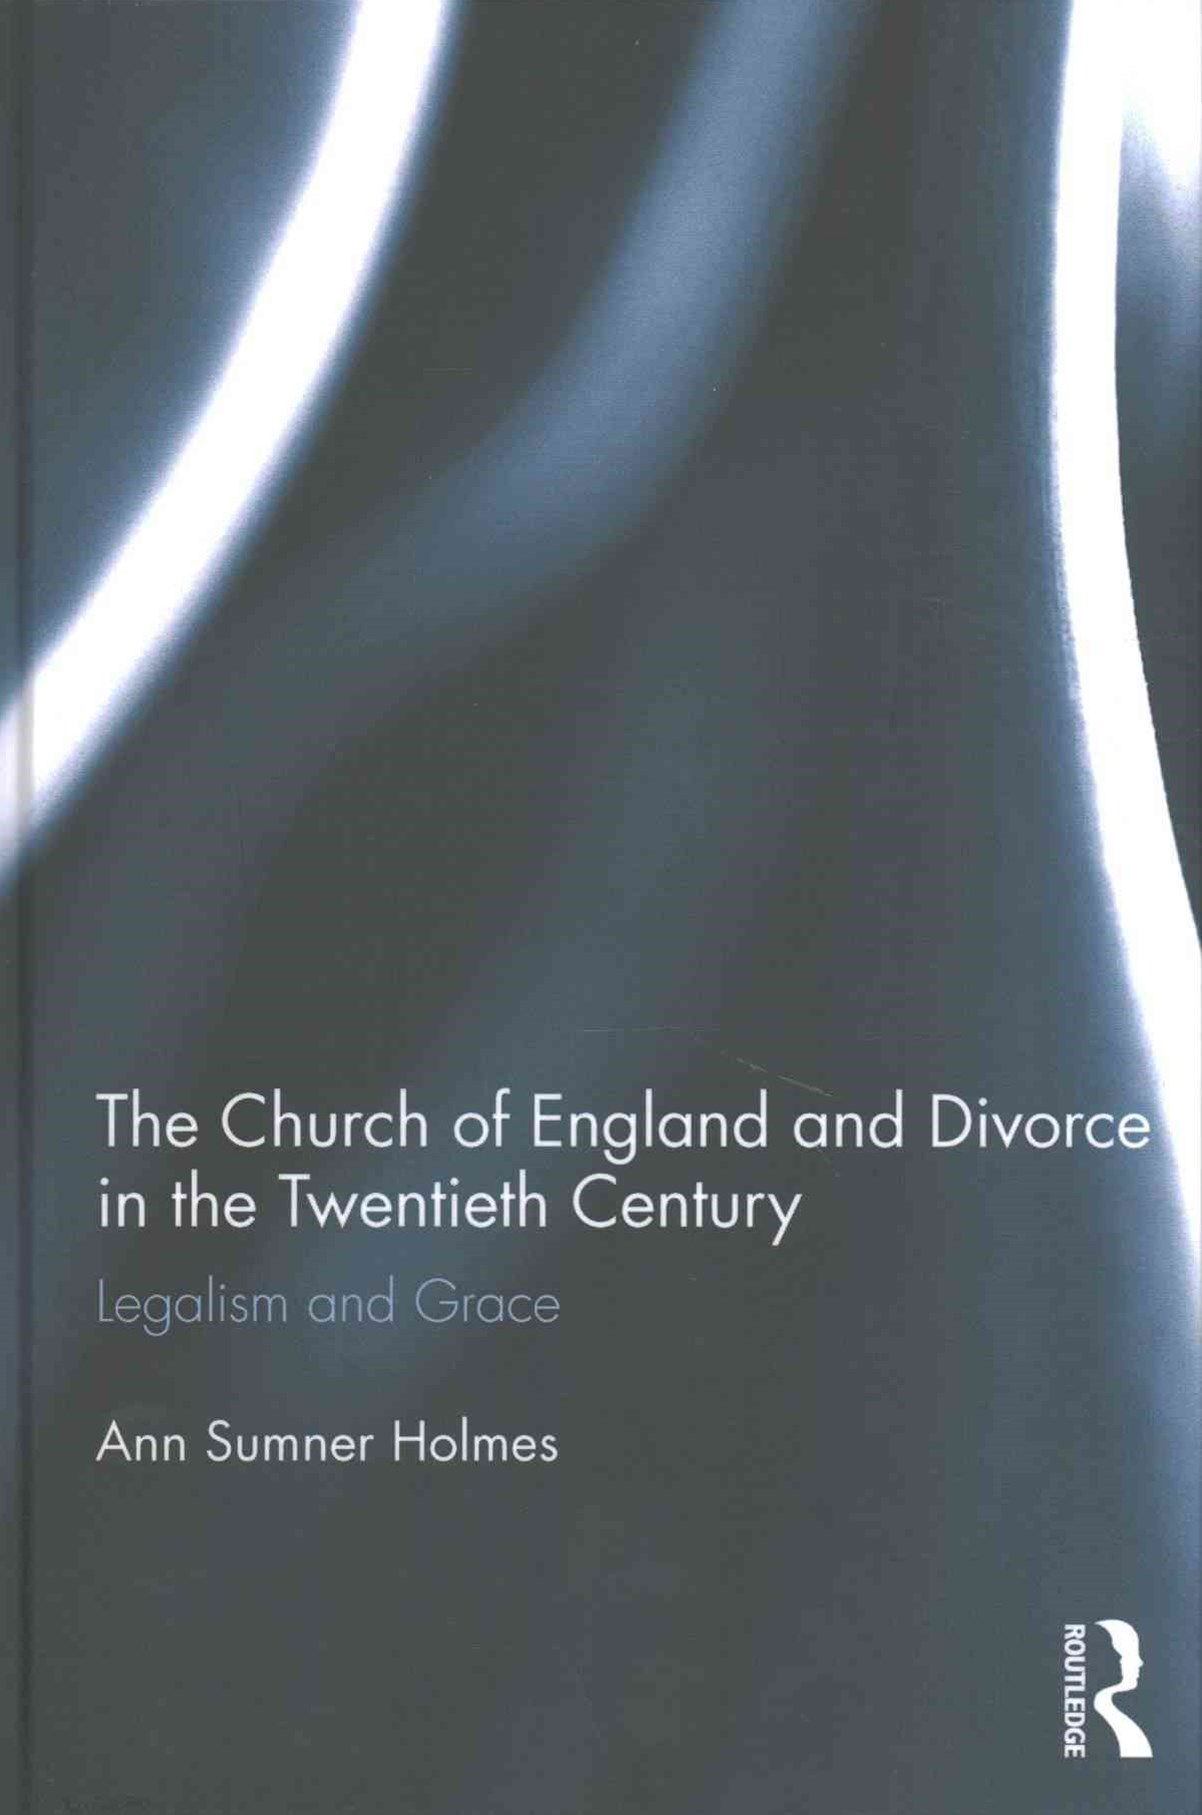 Church of England and Divorce in the Twentieth Century